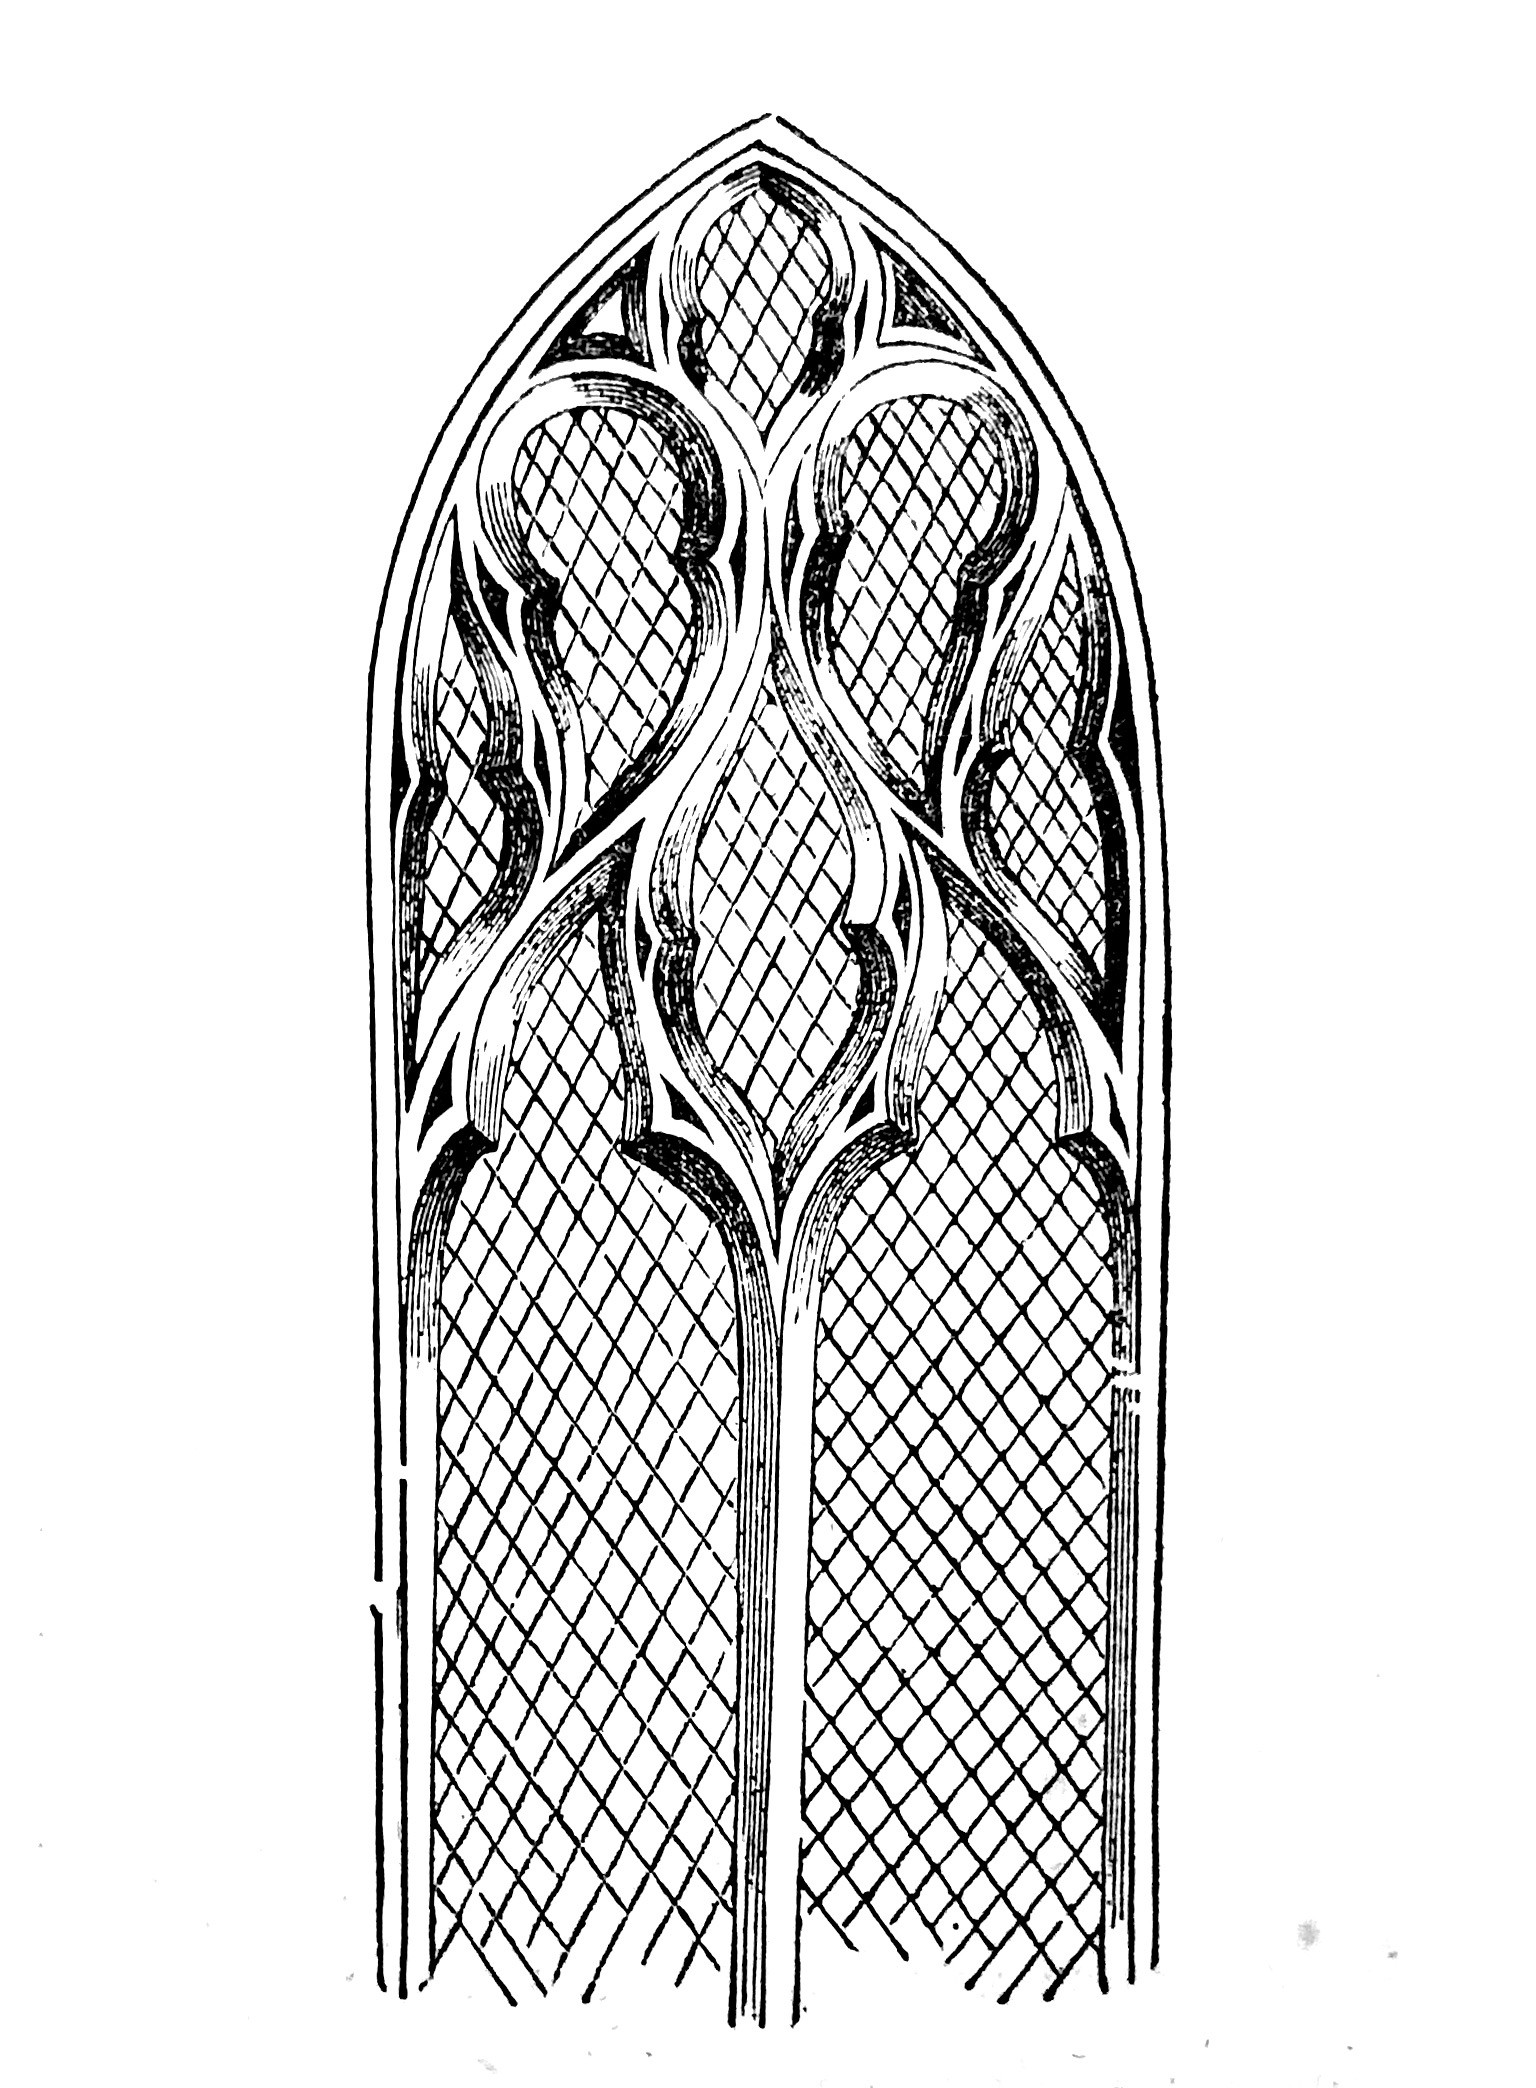 Dessin en noir et blanc d'une fenêtre. // Black and white drawing of a window.